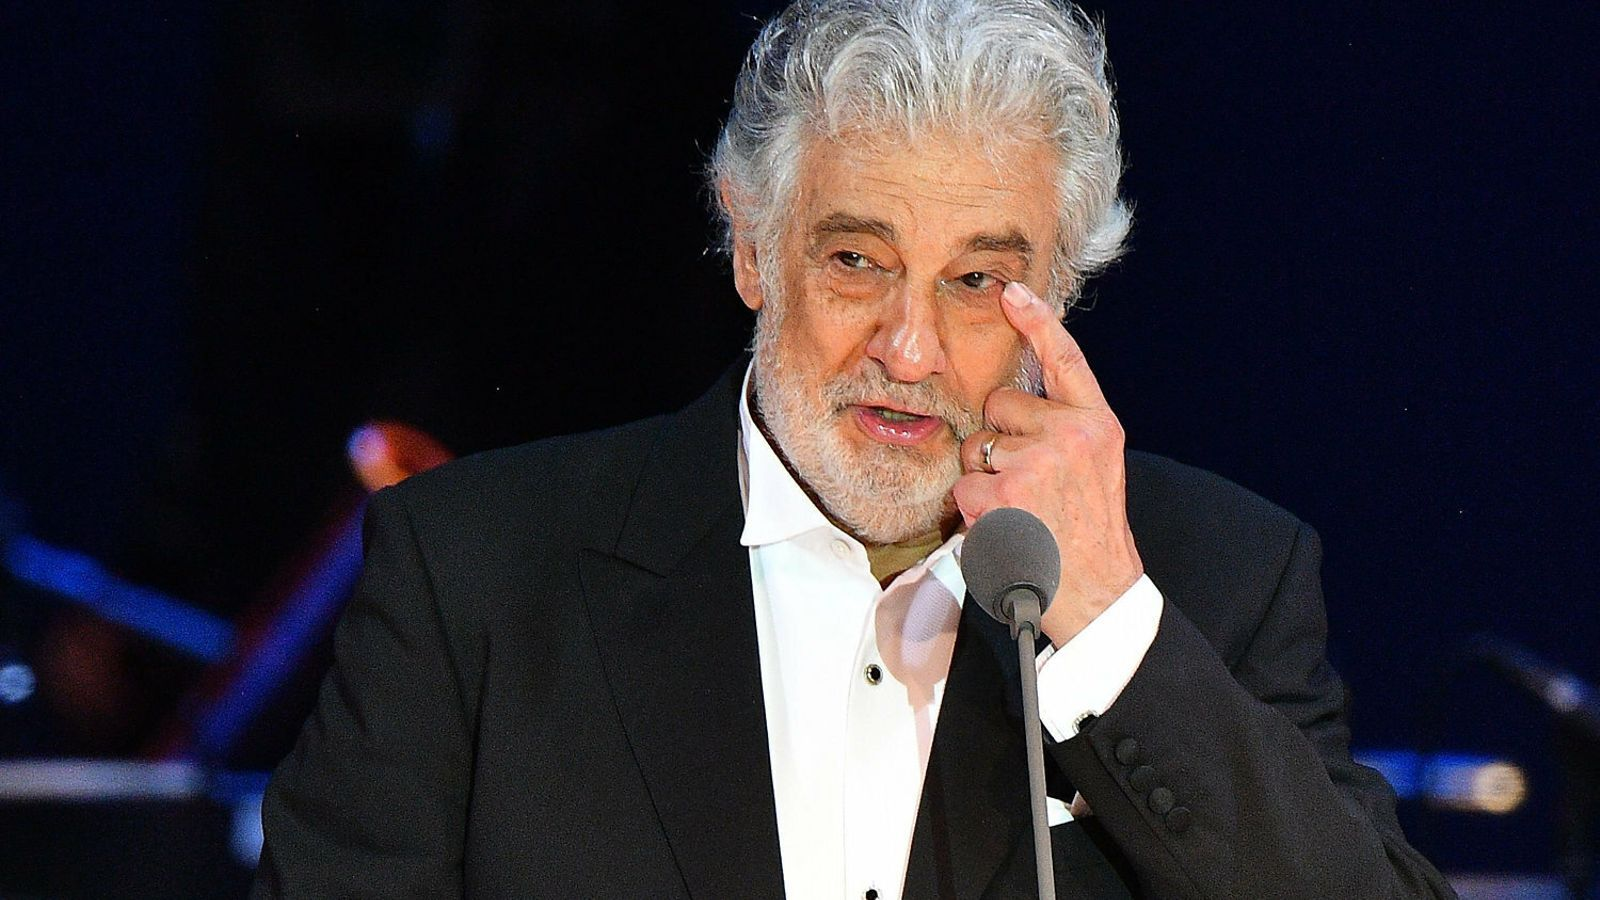 Plácido Domingo, ex director general de l'Òpera de Los Angeles, en una imatge d'arxiu.